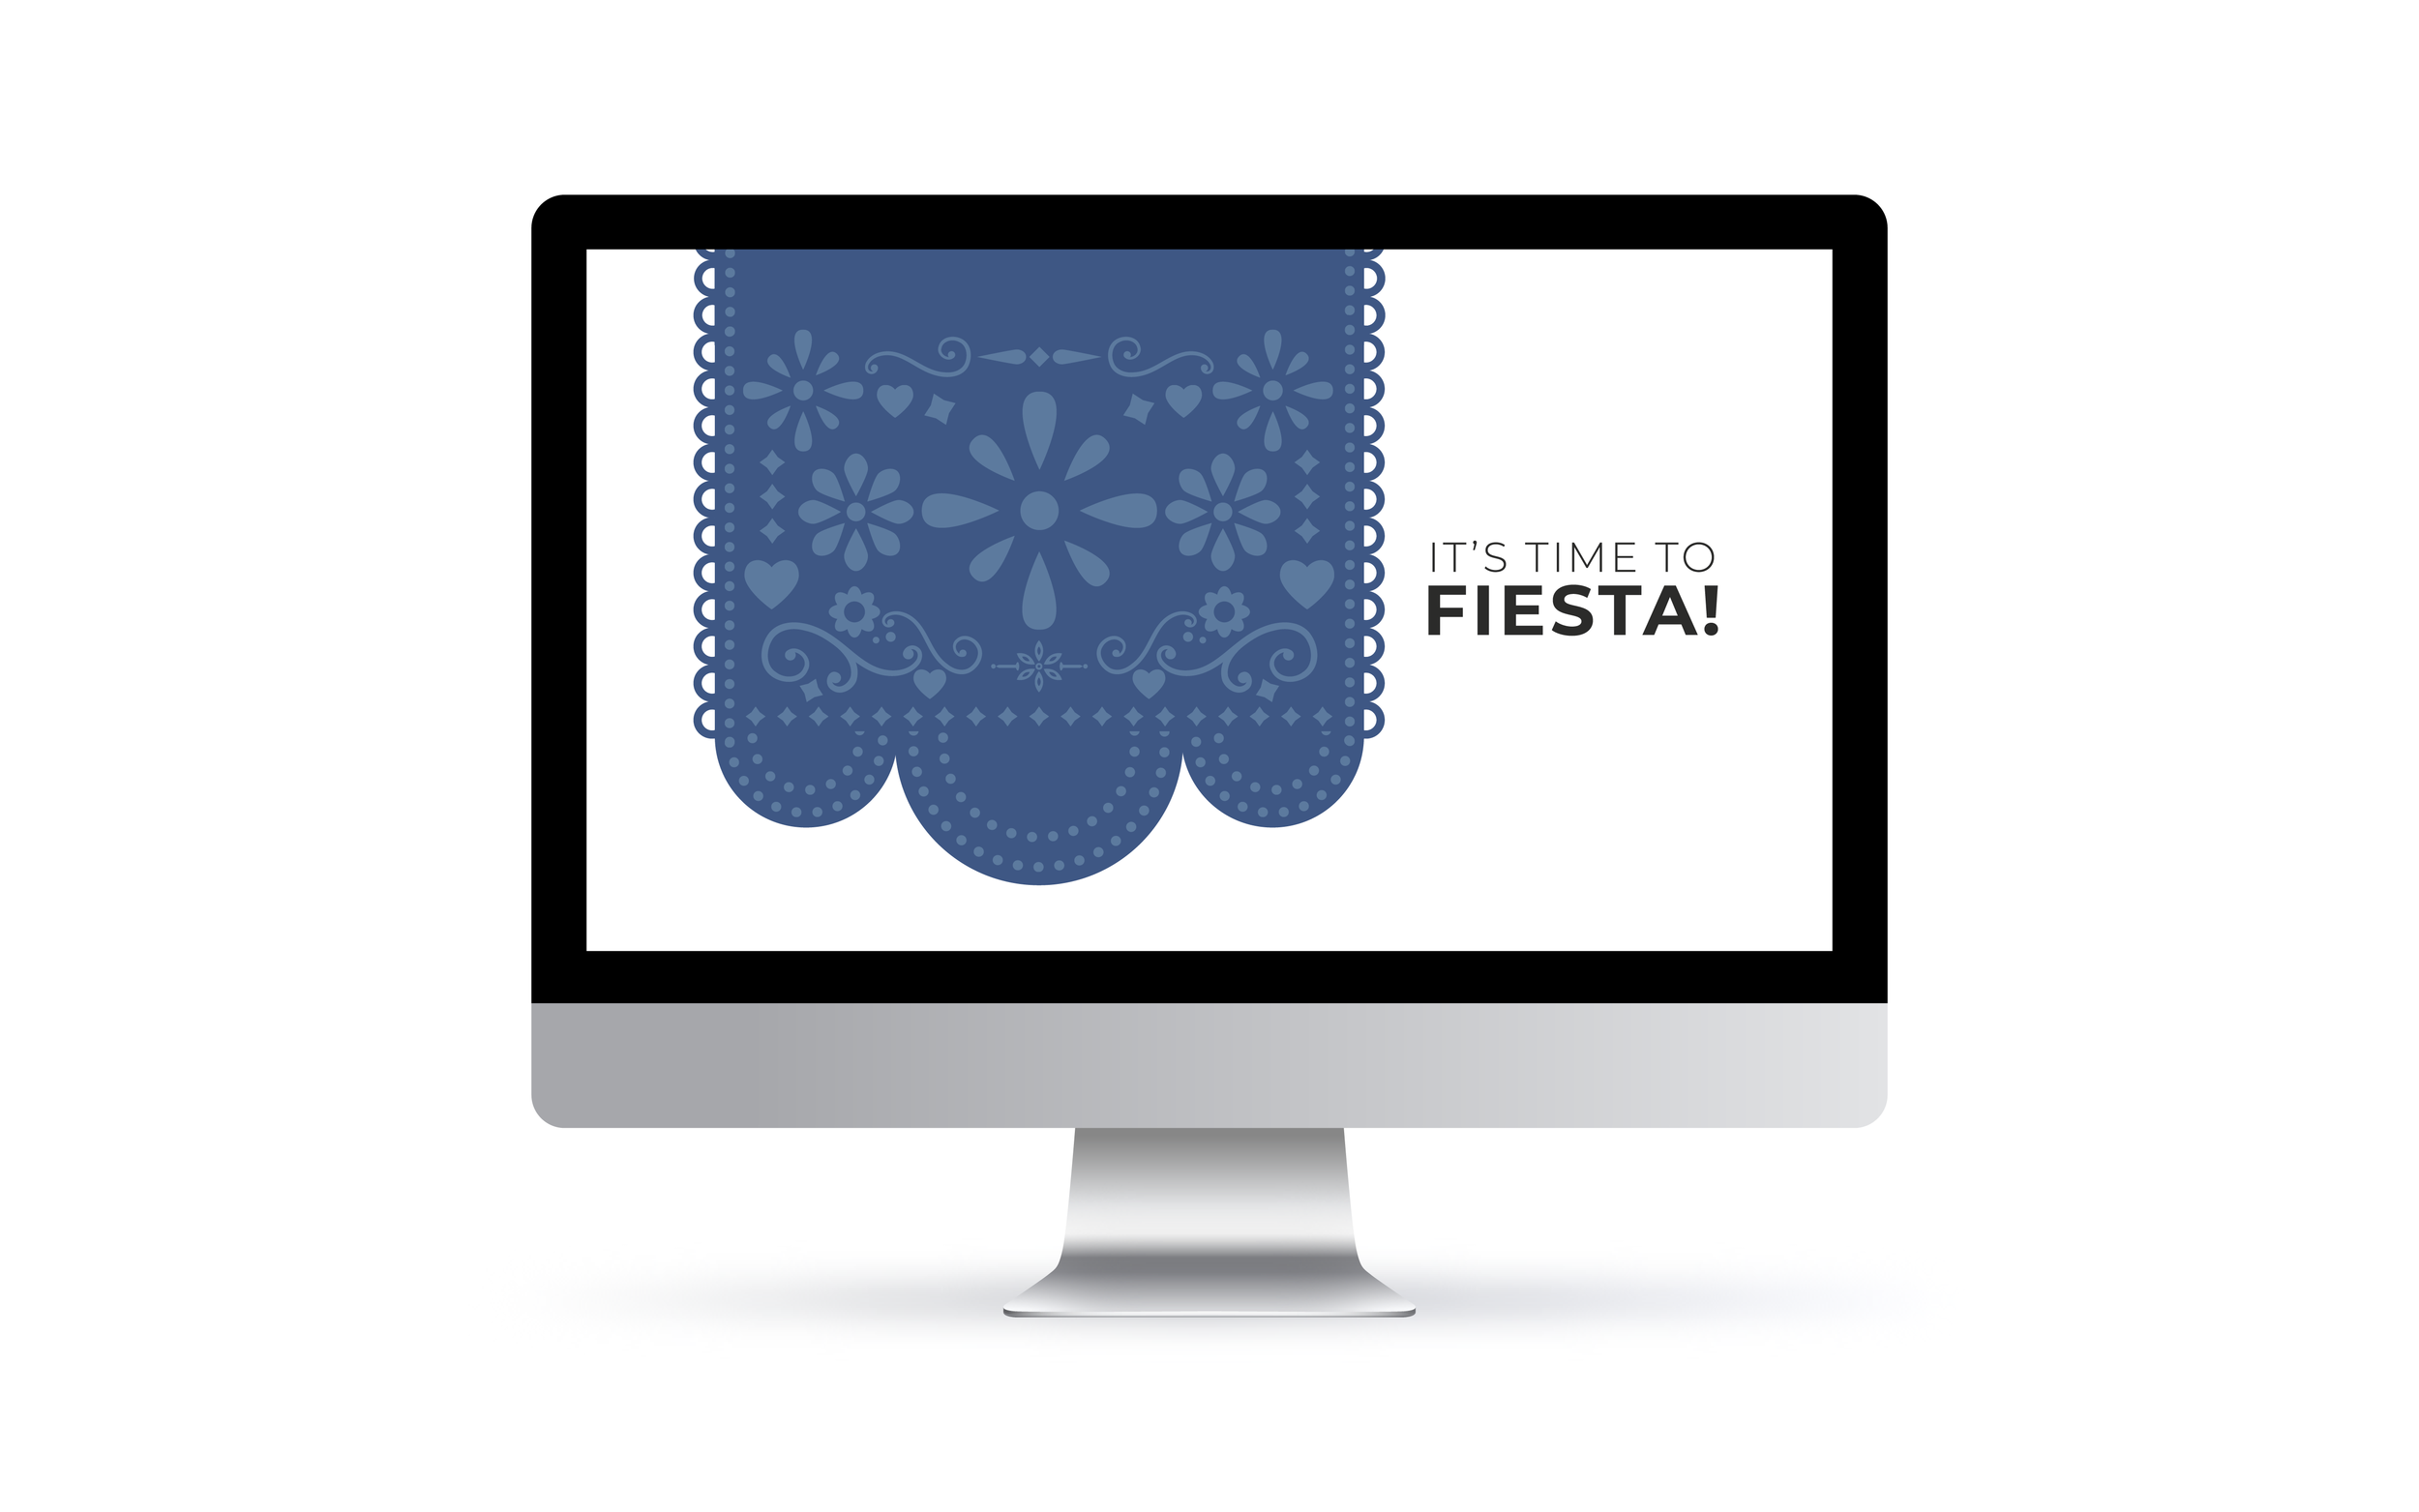 It's time to fiesta@4x.png